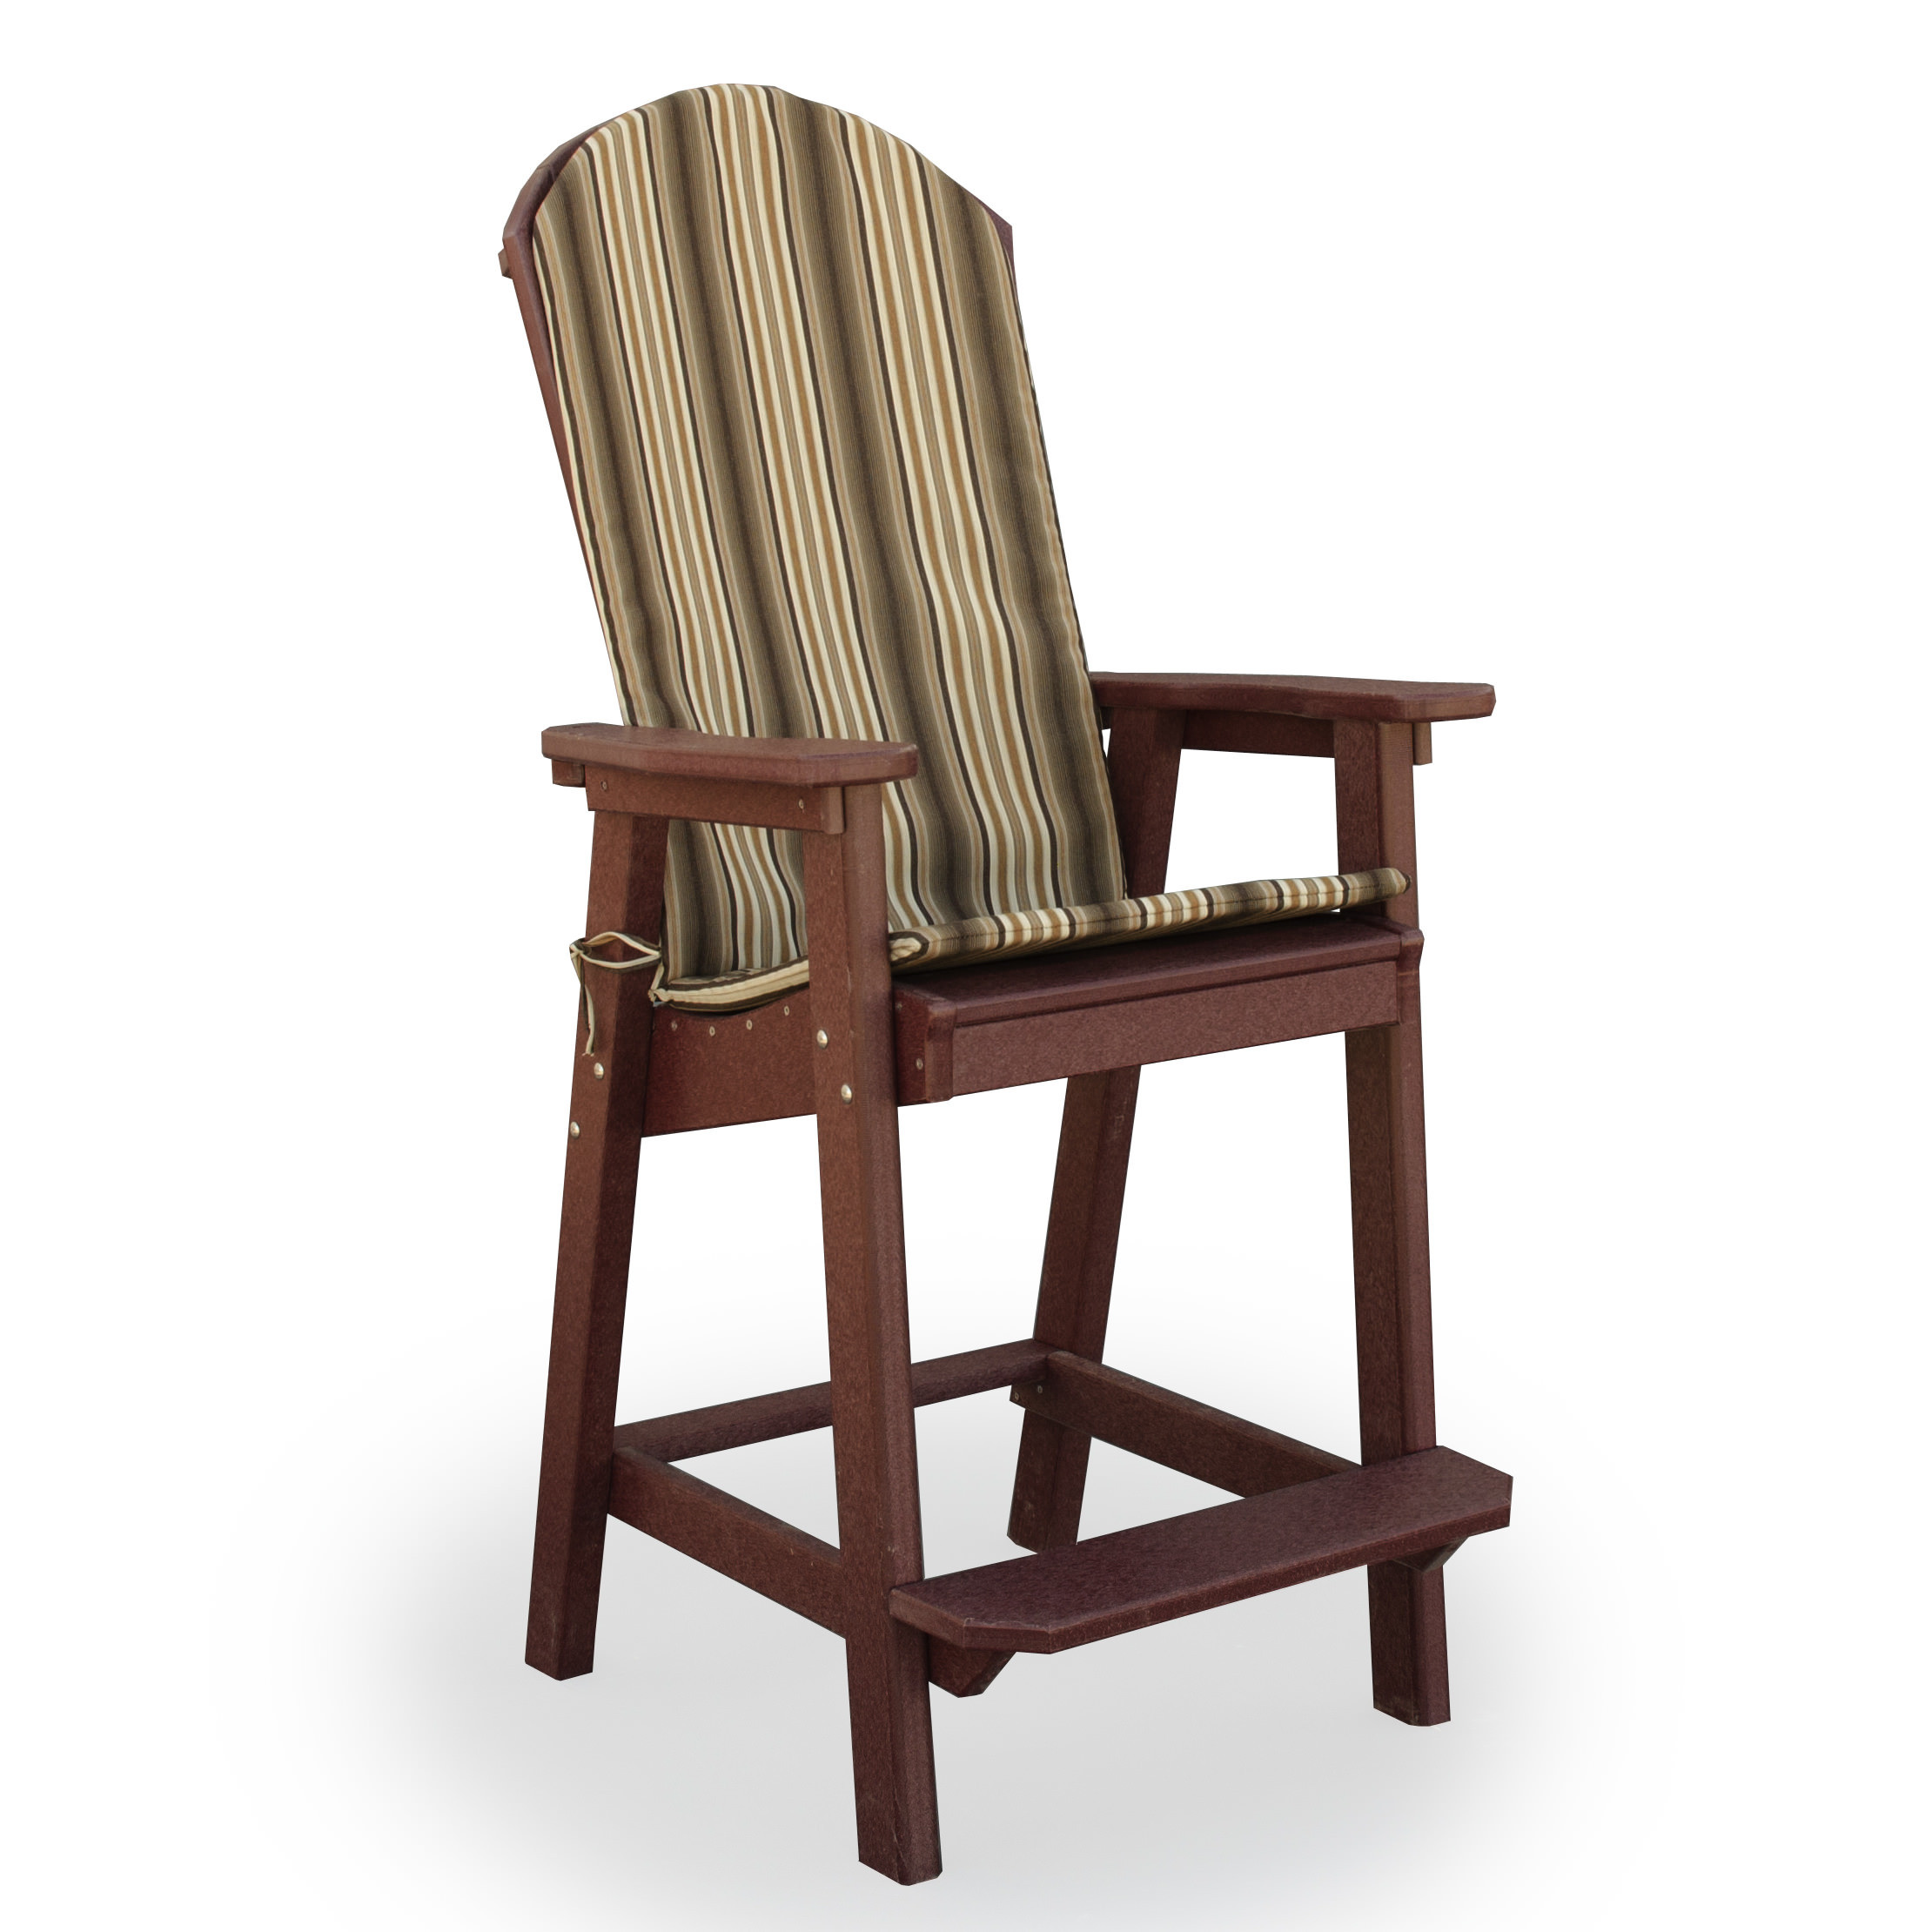 Amish Poly Wood Seat Cushion for Great Bay Bar Chair